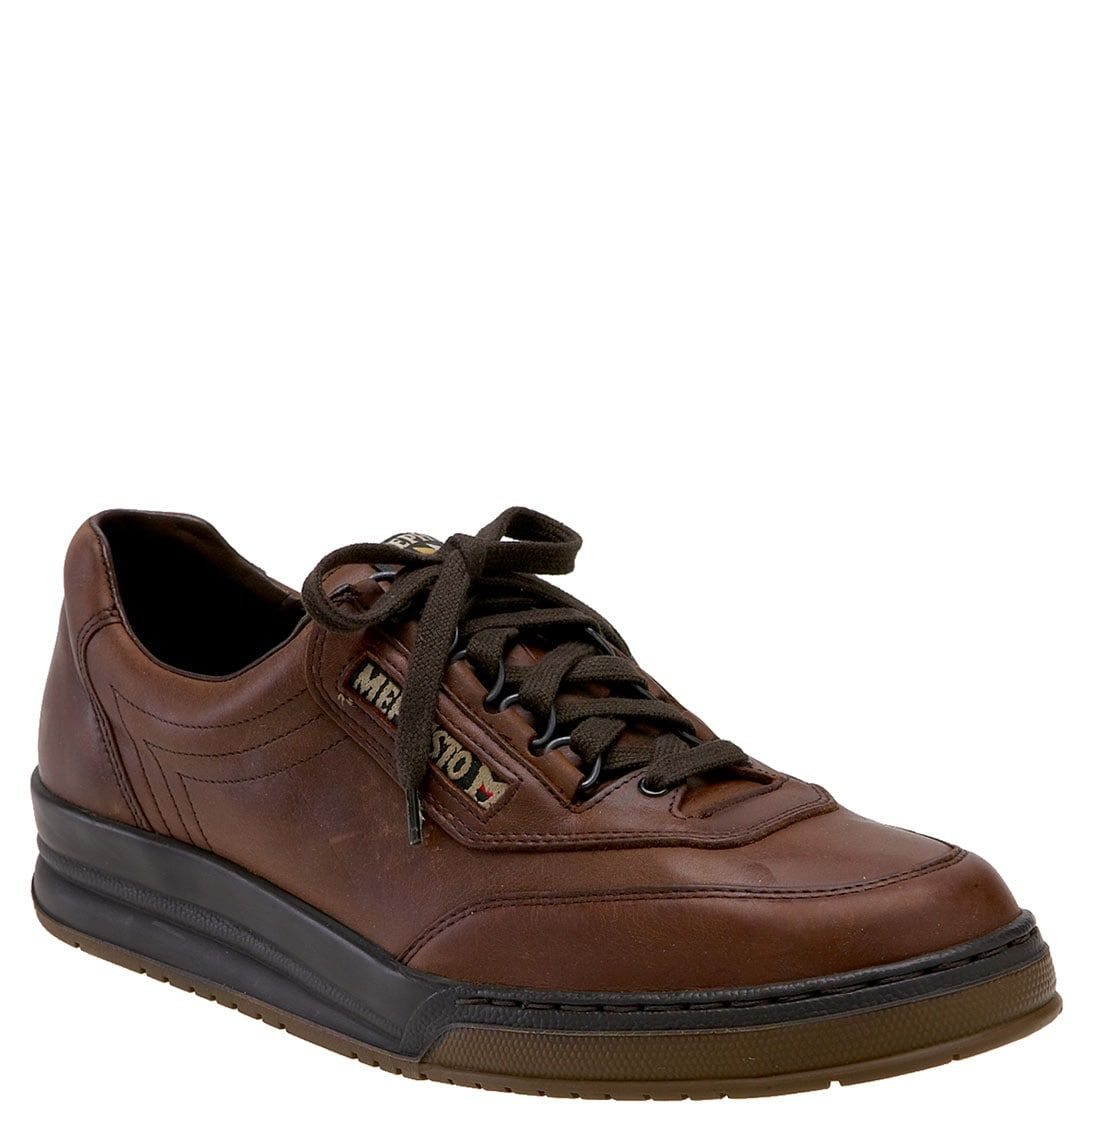 3a7f93aa19 MEPHISTO 'MATCH' WALKING SHOE. #mephisto #shoes Mens Walking Shoes, Mephisto